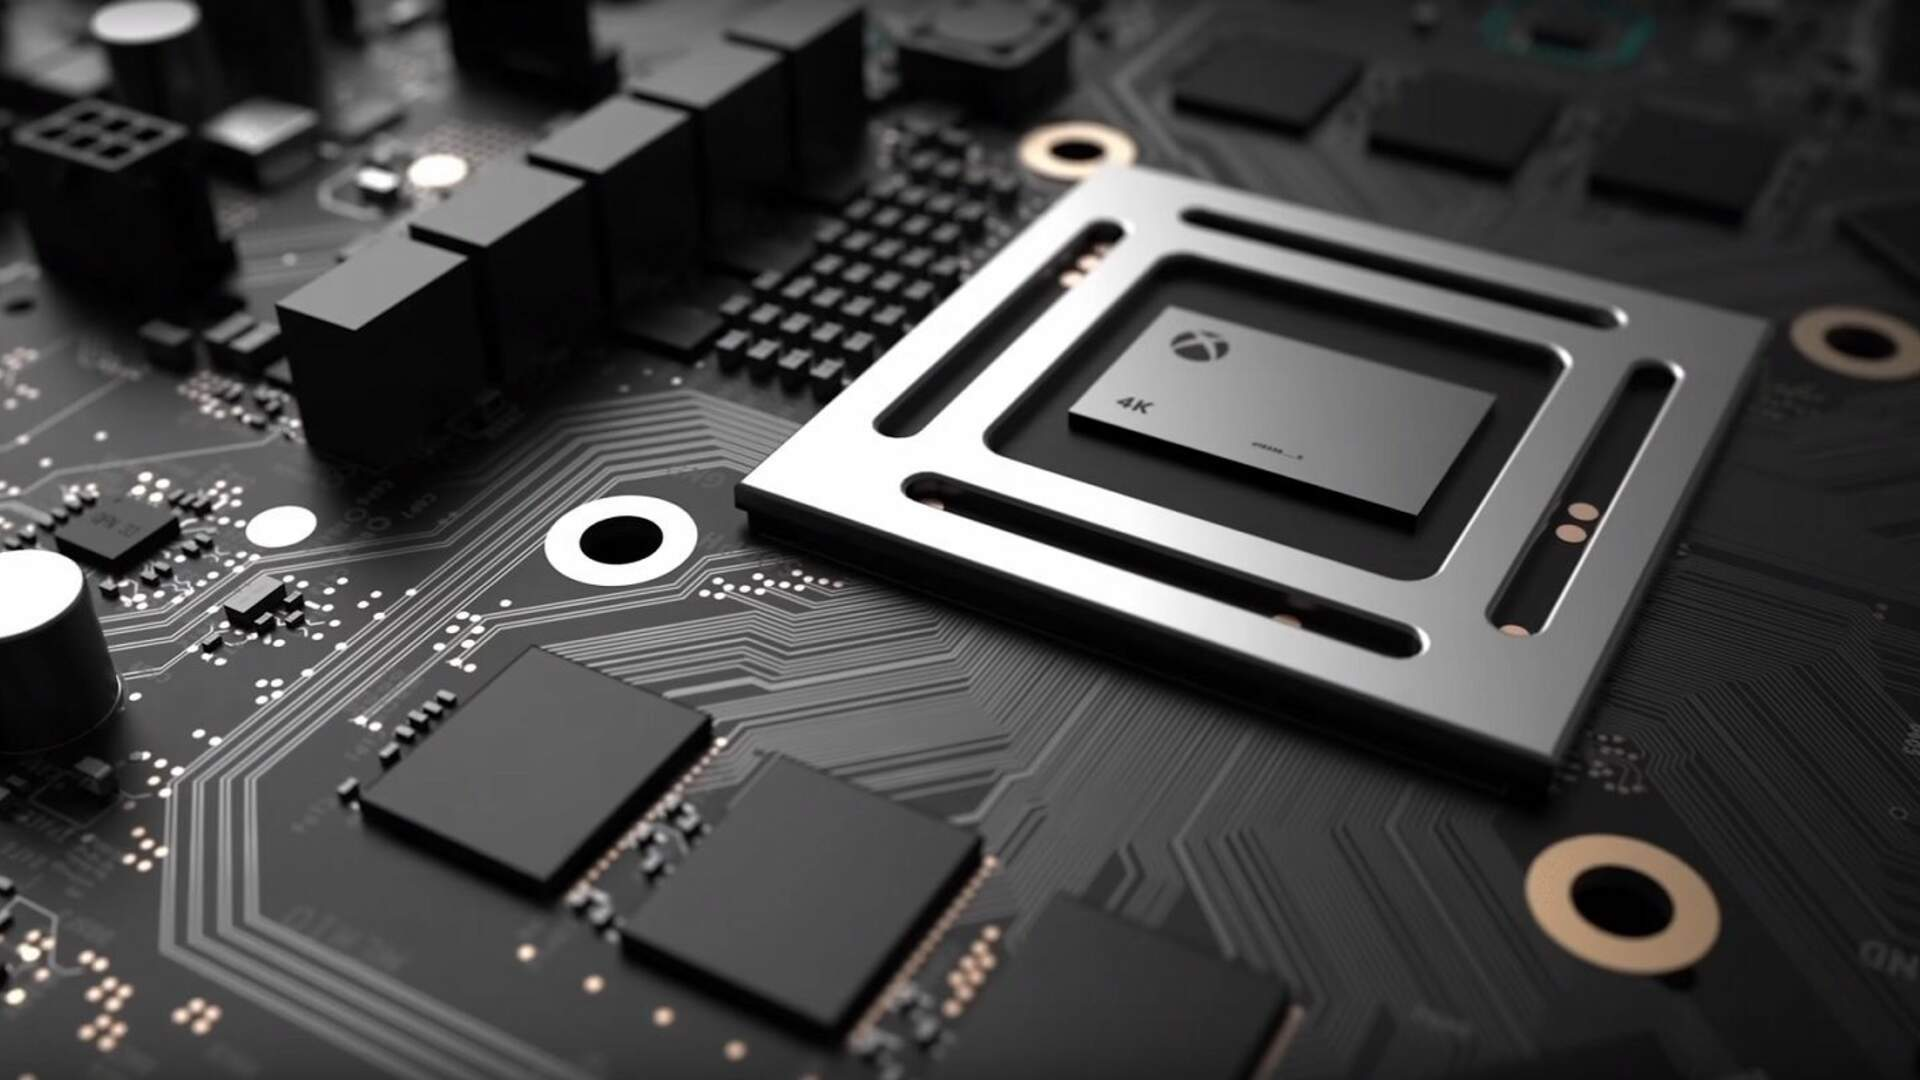 Xbox One X Pre-order, Reviews, Price, Release Date, X Enhanced Games, 4K Spec, Scorpio - Everything we Know